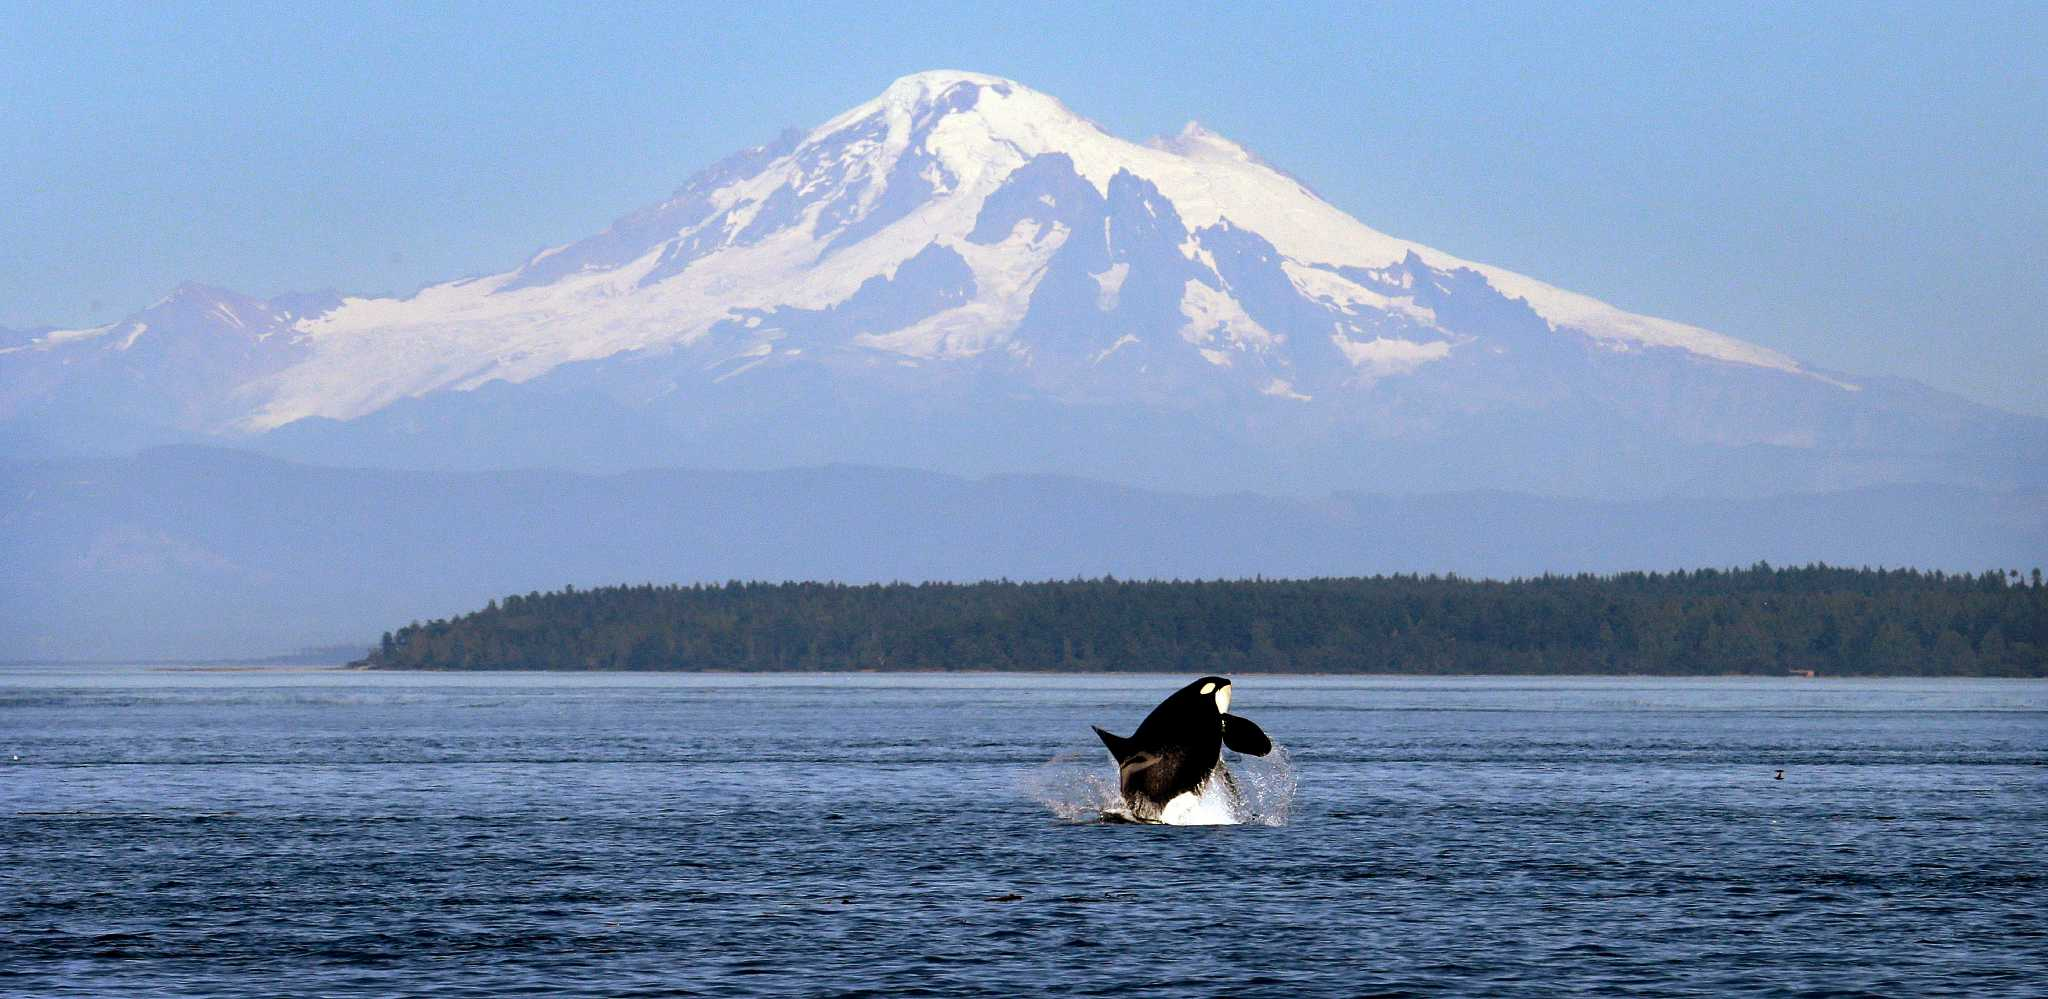 10 breathtaking spots for whale watching in Washington without a boat